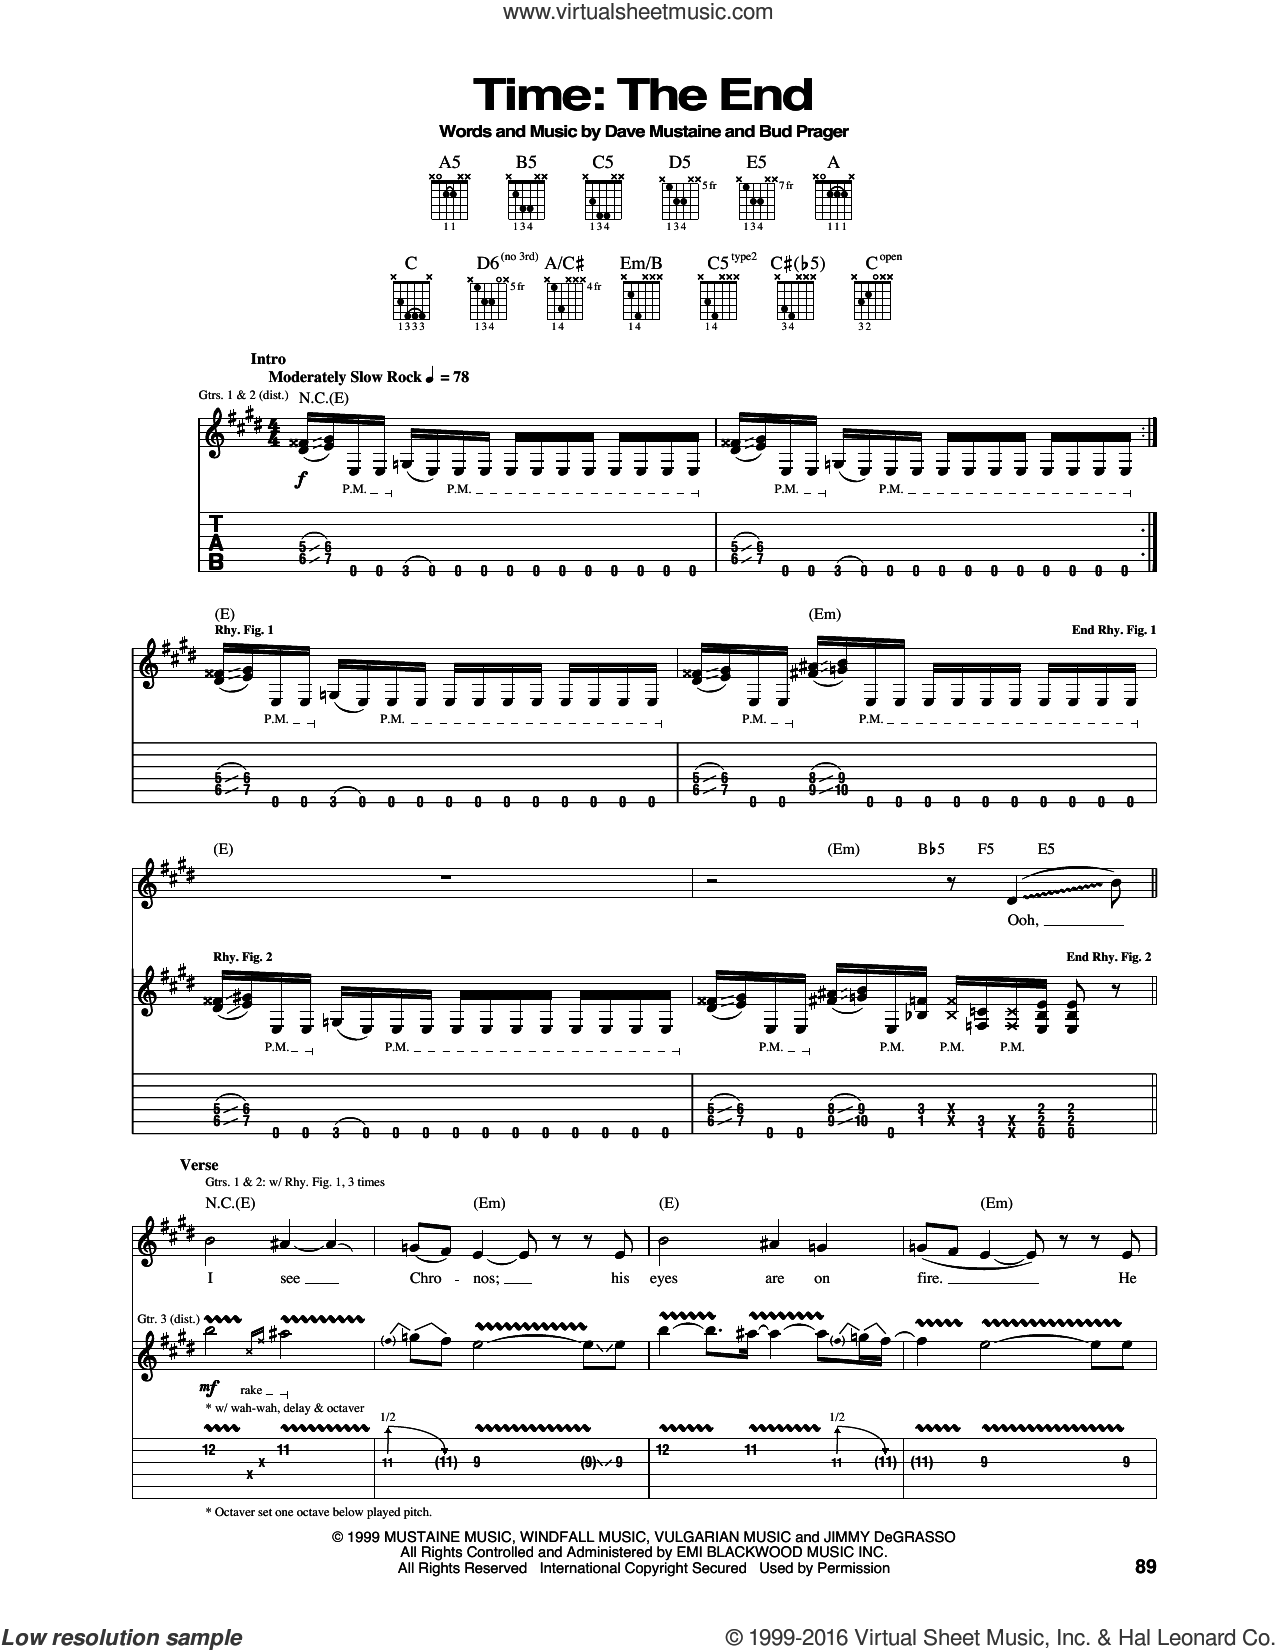 Time: The End sheet music for guitar (tablature) by Dave Mustaine